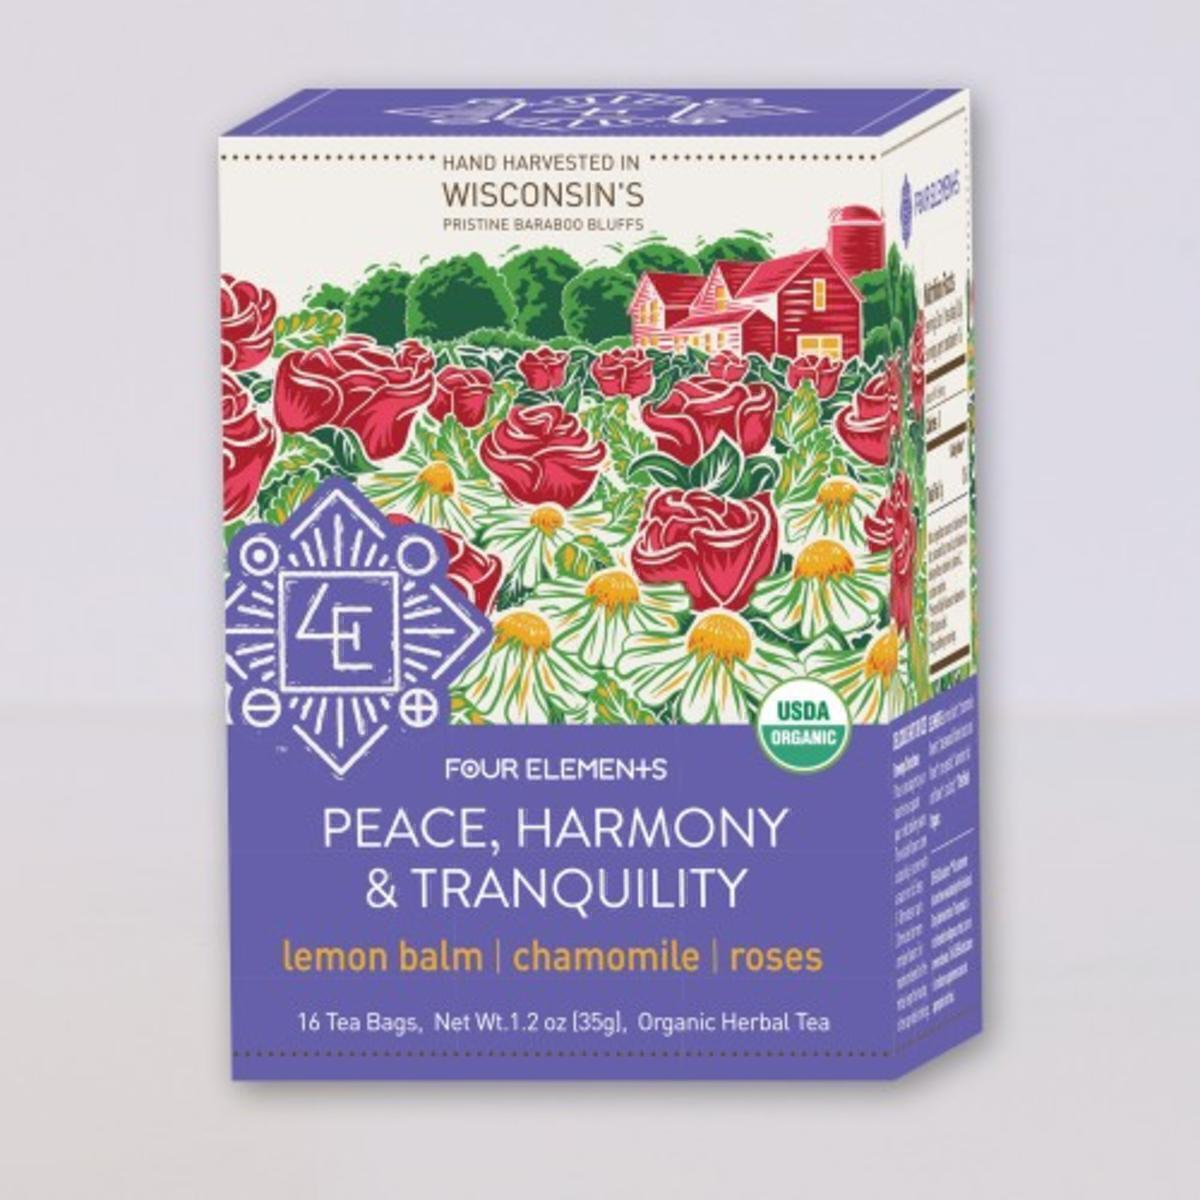 Four Elements Peace, Harmony & tranquilty Tea